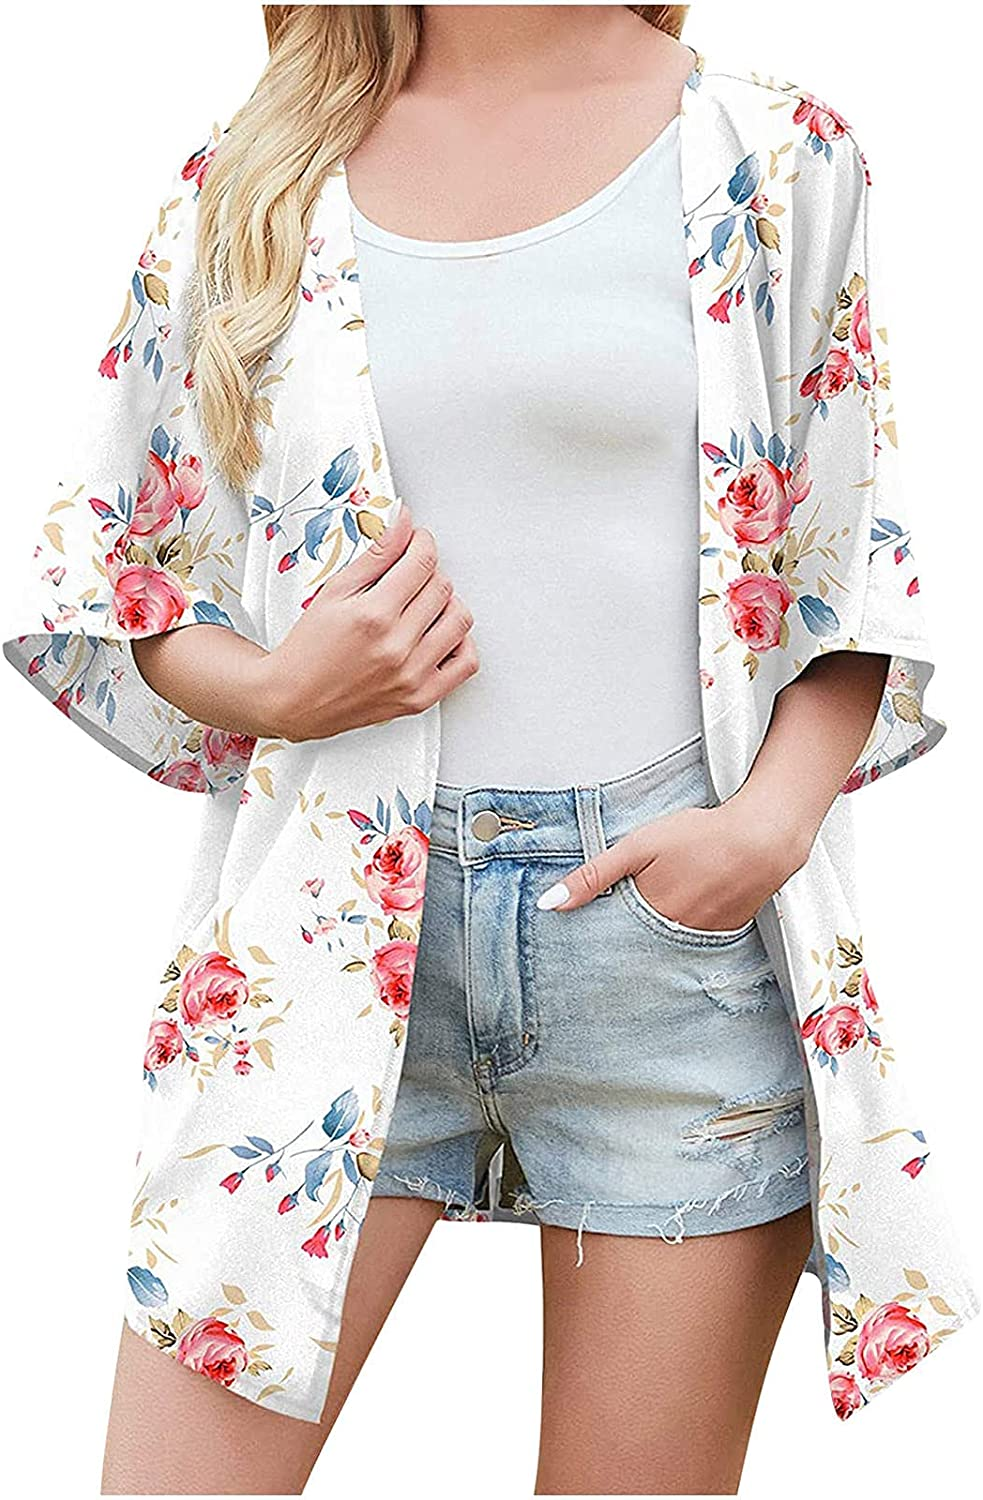 Kanzd Cardigans for Women Fashion Long Sleeve Floral Print Chiffon Kimono Cardigan Open Front Cover Up Casual Blouse Tops